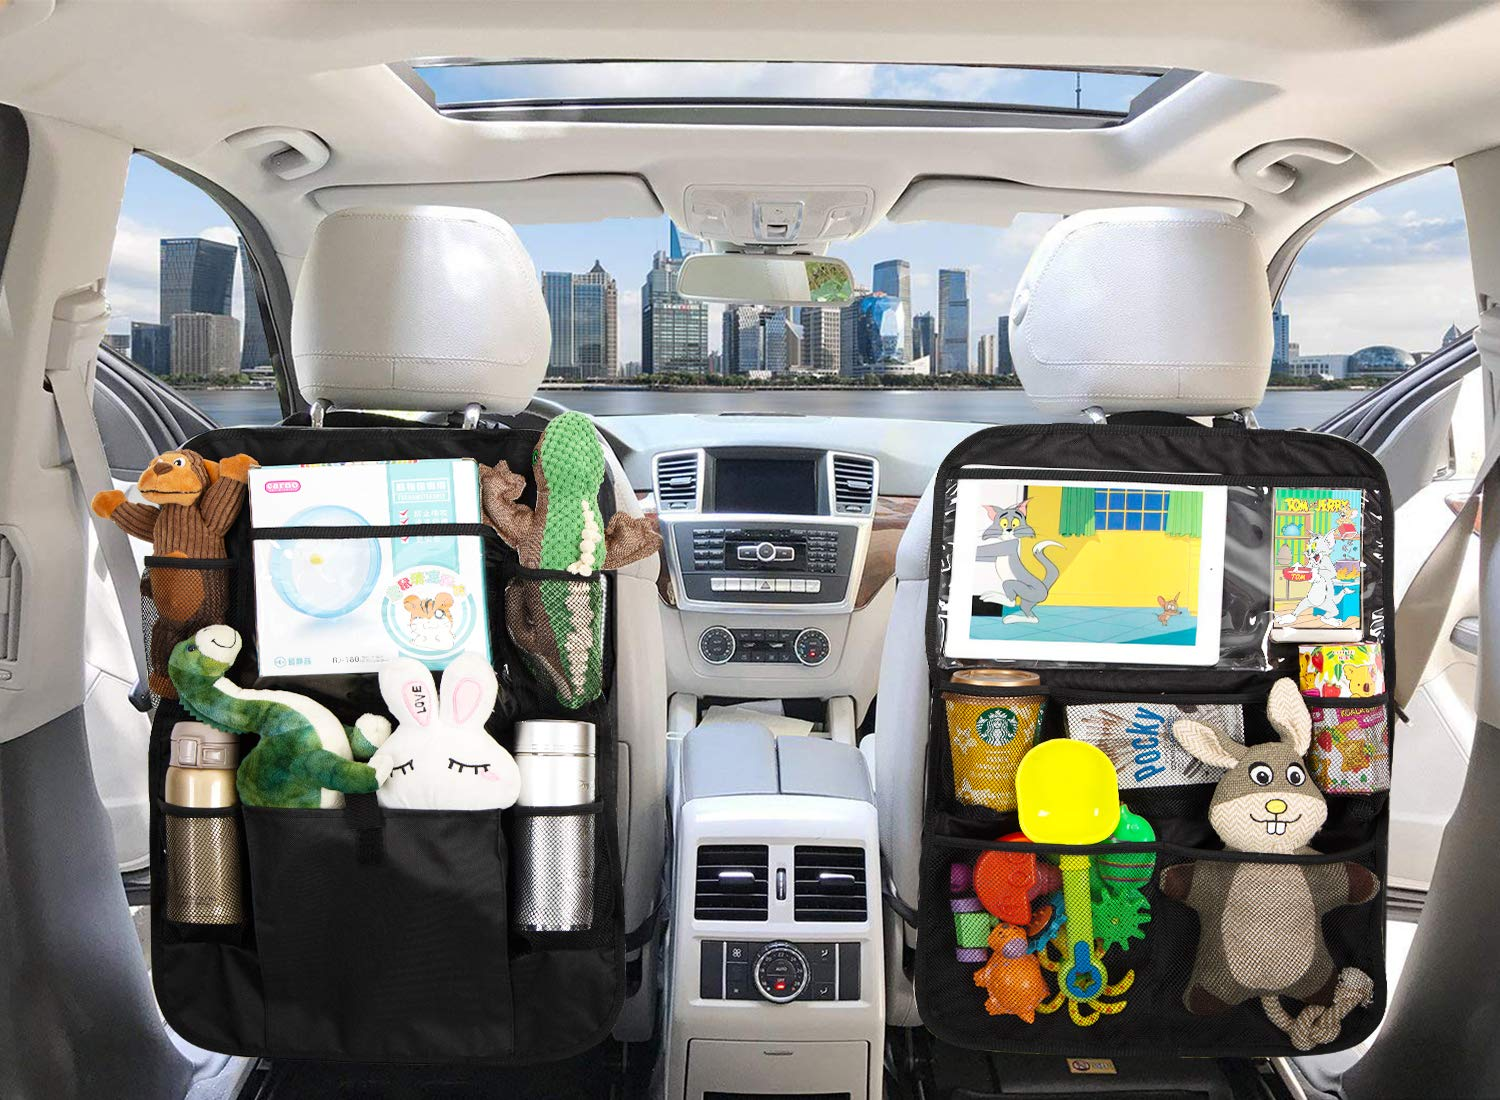 LAurth Backseat Car Organizer with Touch Screen Tablet Holder Multi-Pockets Car Kick Mat for Kids Toys Drink Bottle Drink Vehicles Magazines Storage Seat Back Protectors, 2 Pack by LAurth